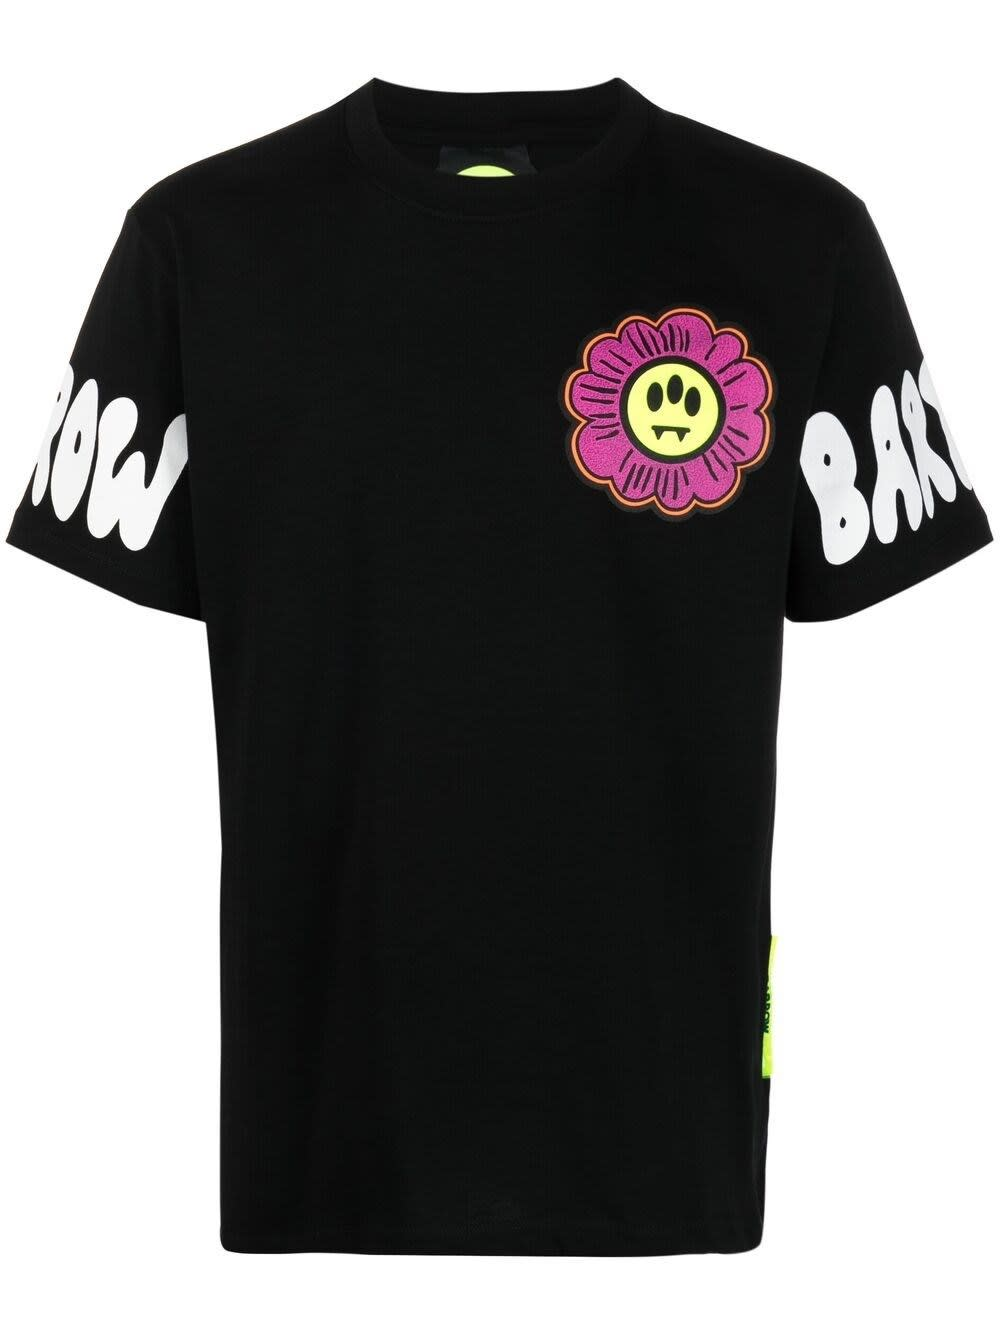 Barrow T-shirts COTTON T-SHIRT WITH FLOWER SMILE PRINT